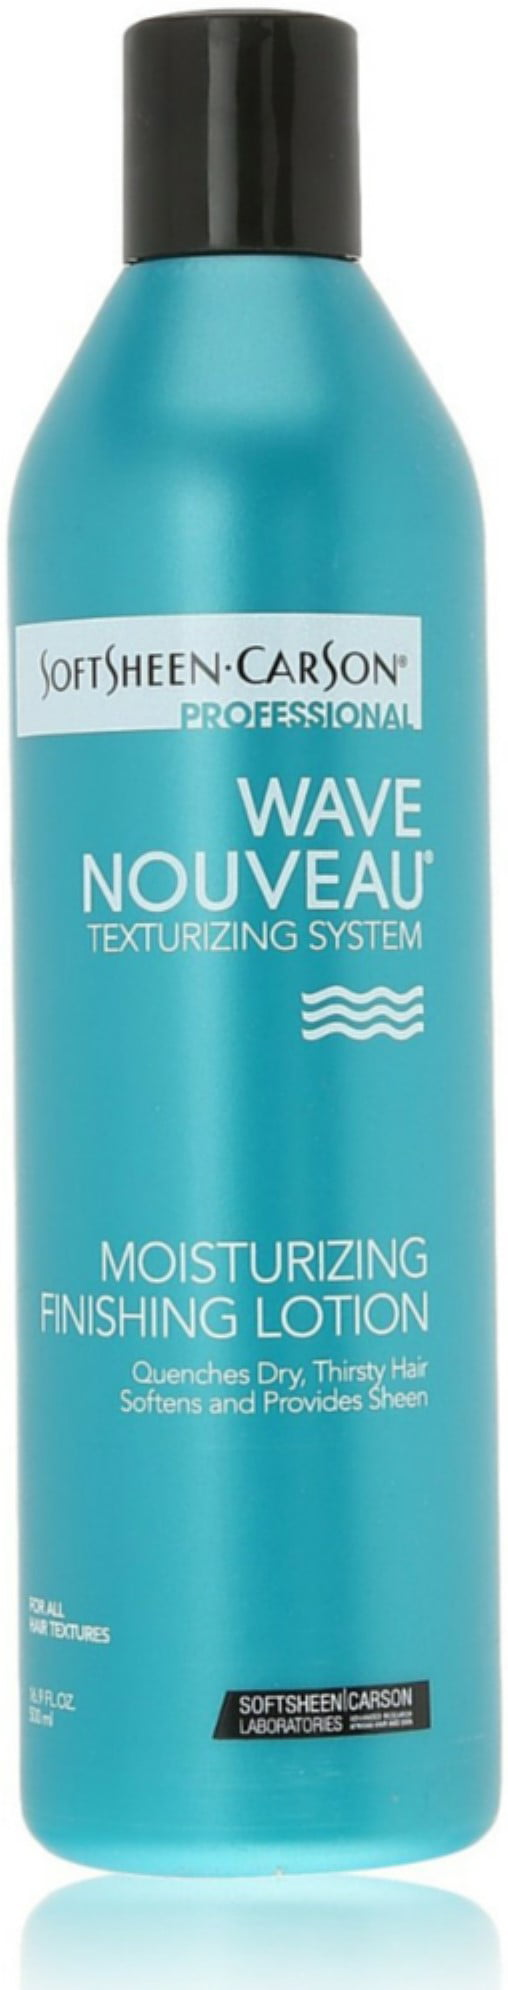 Wave Nouveau Moisturizing Finishing Lotion 169 Oz Walmartcom